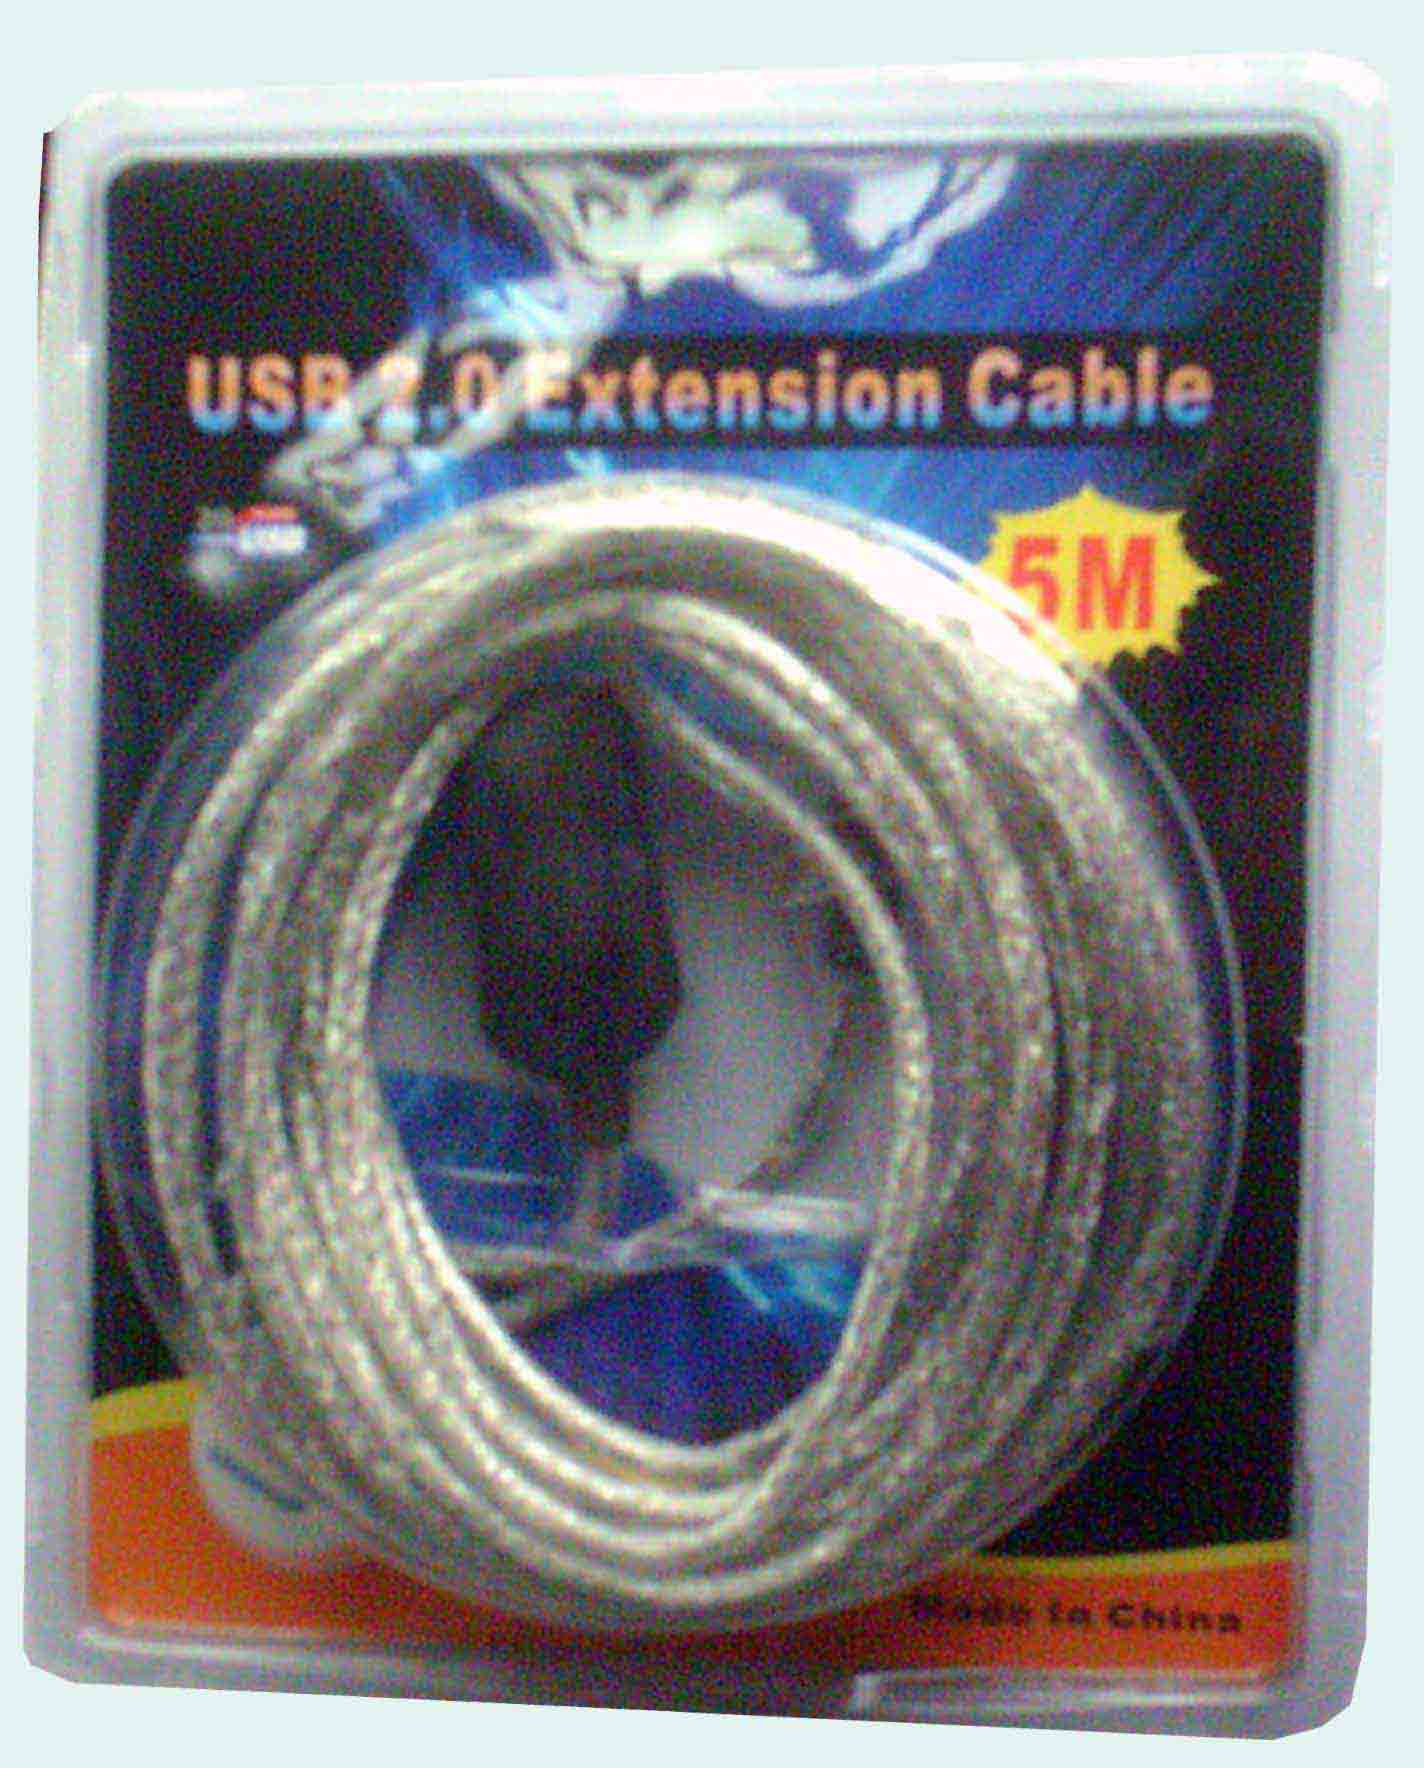 USB 2.0 Extension Cable (5M)